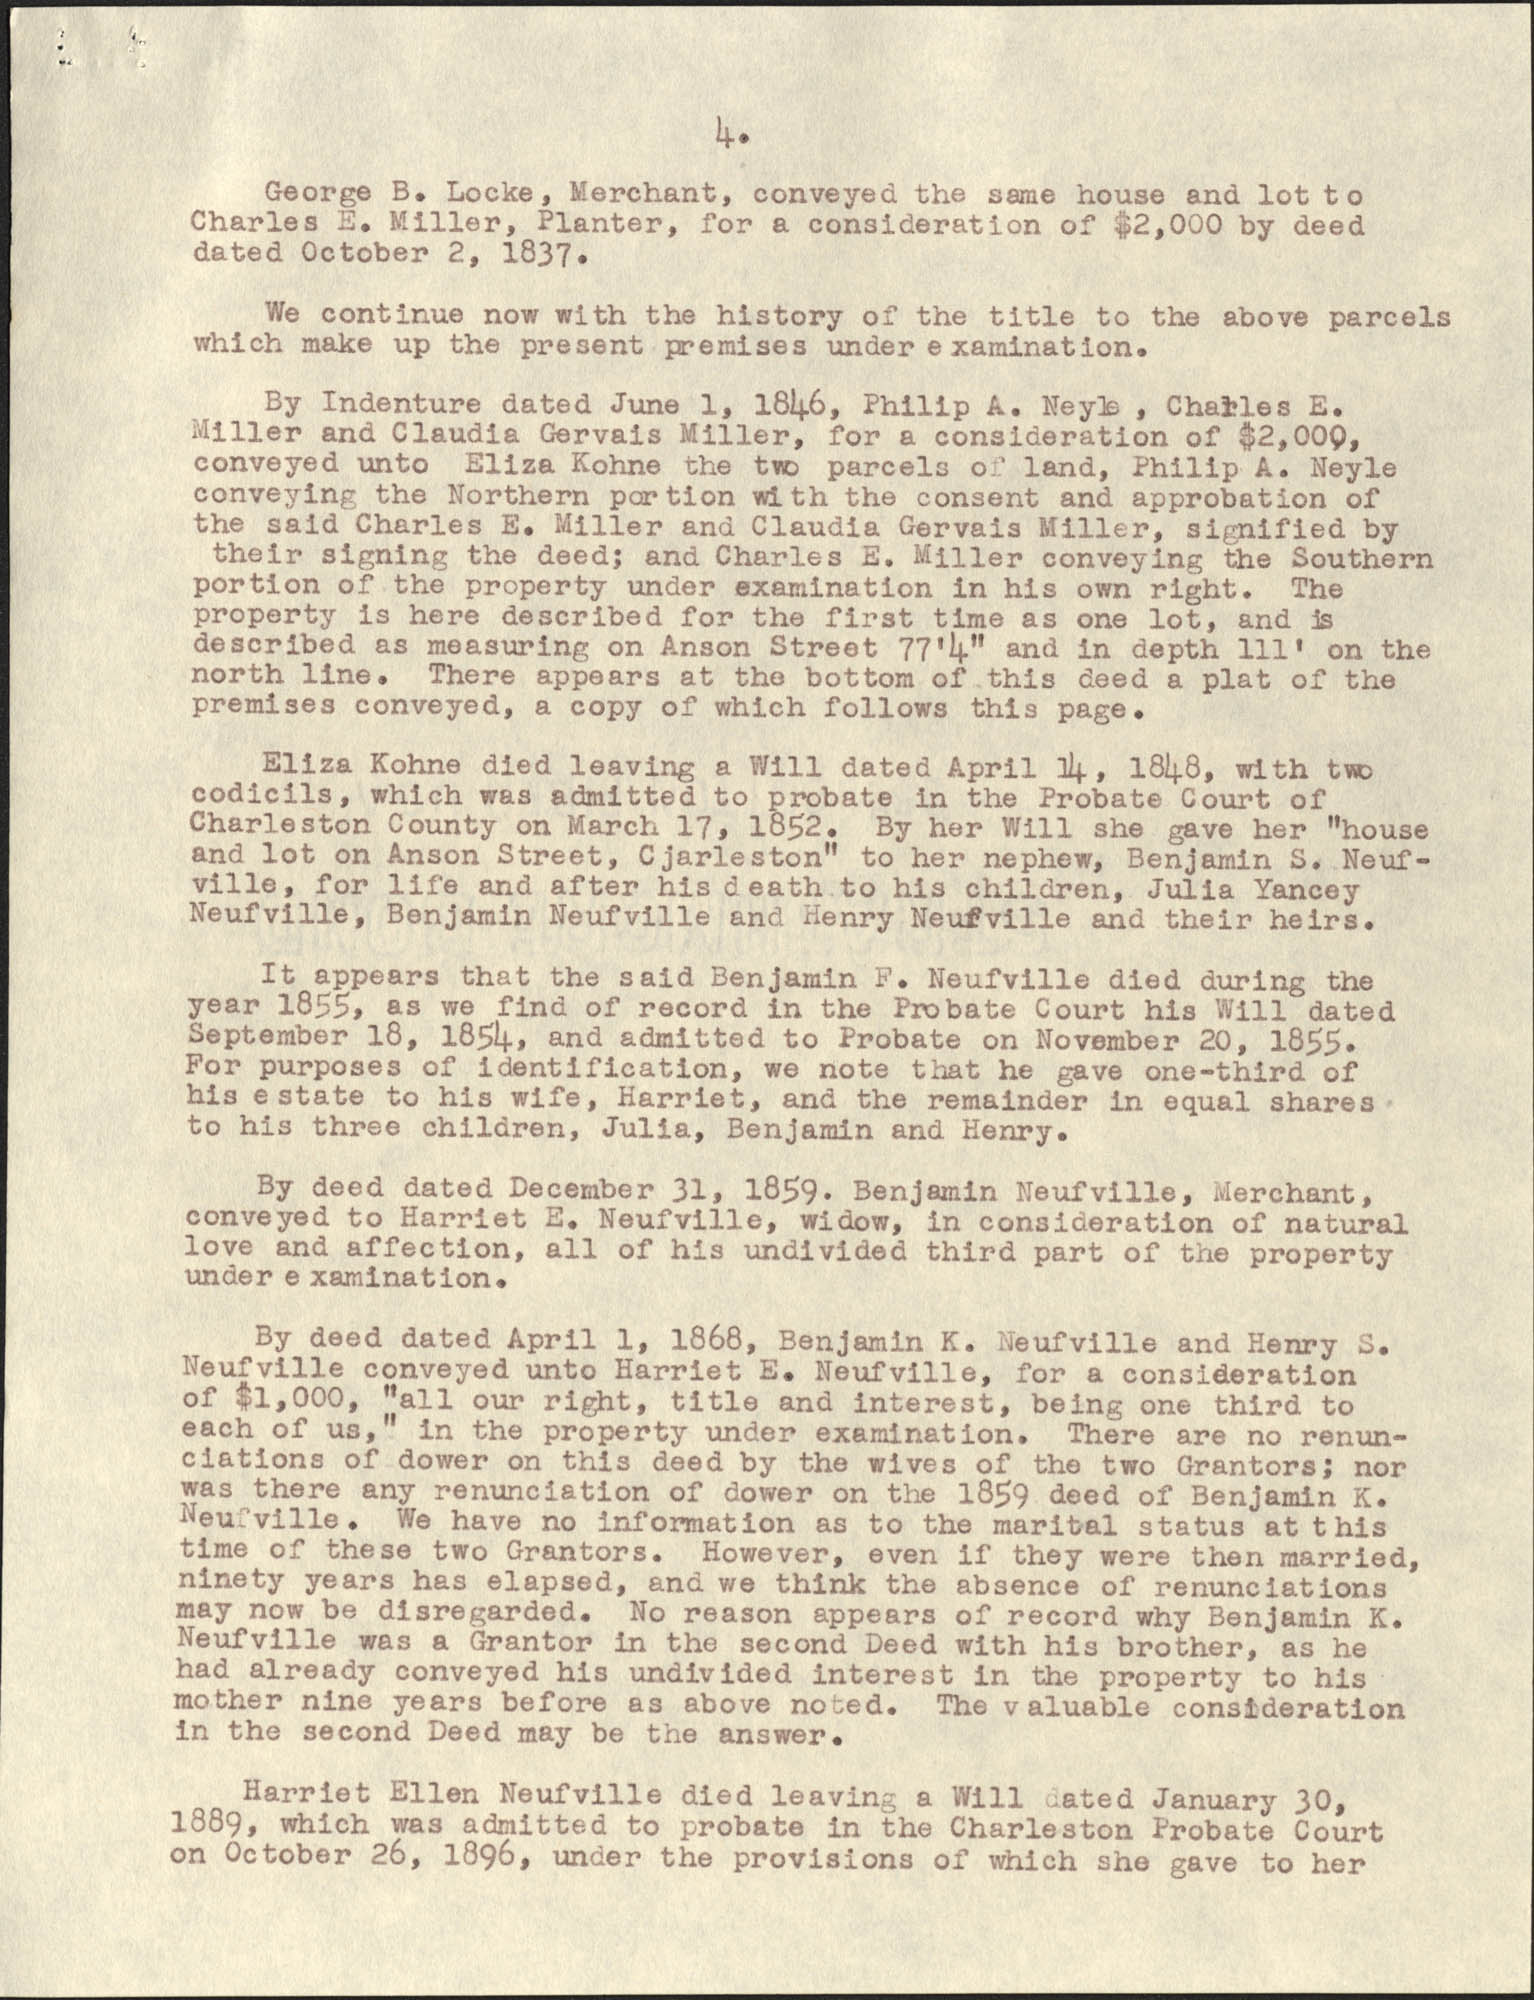 Letter from S. Henry Edmunds to Ben Scott Whaley, May 6, 1959, Page 4